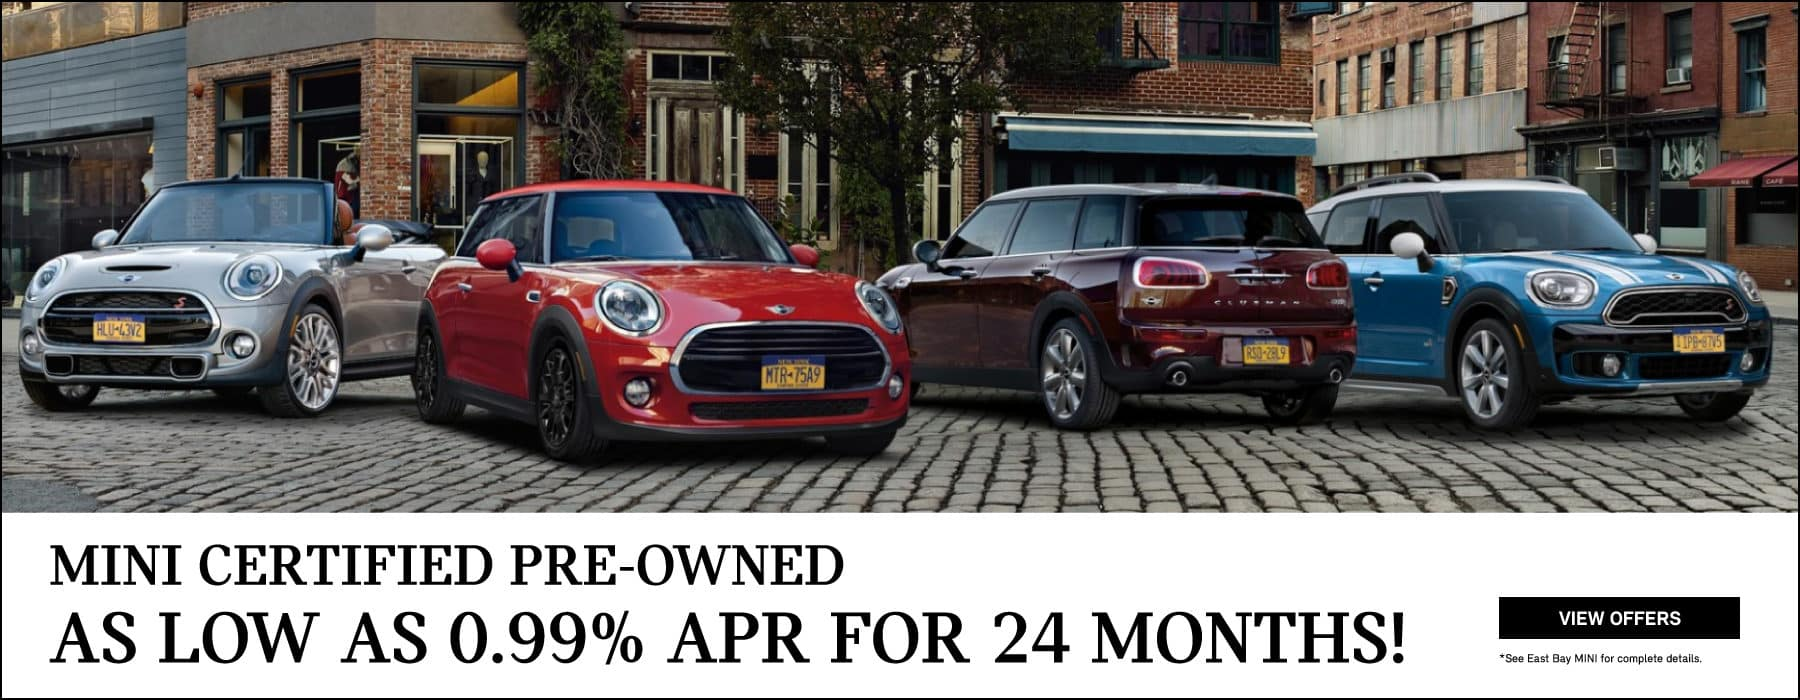 MINI Certified Pre-onwed as low as 0.99% APR for 24 months! View offers button. See East Bay MINI for complete details. Family of MINI's image.